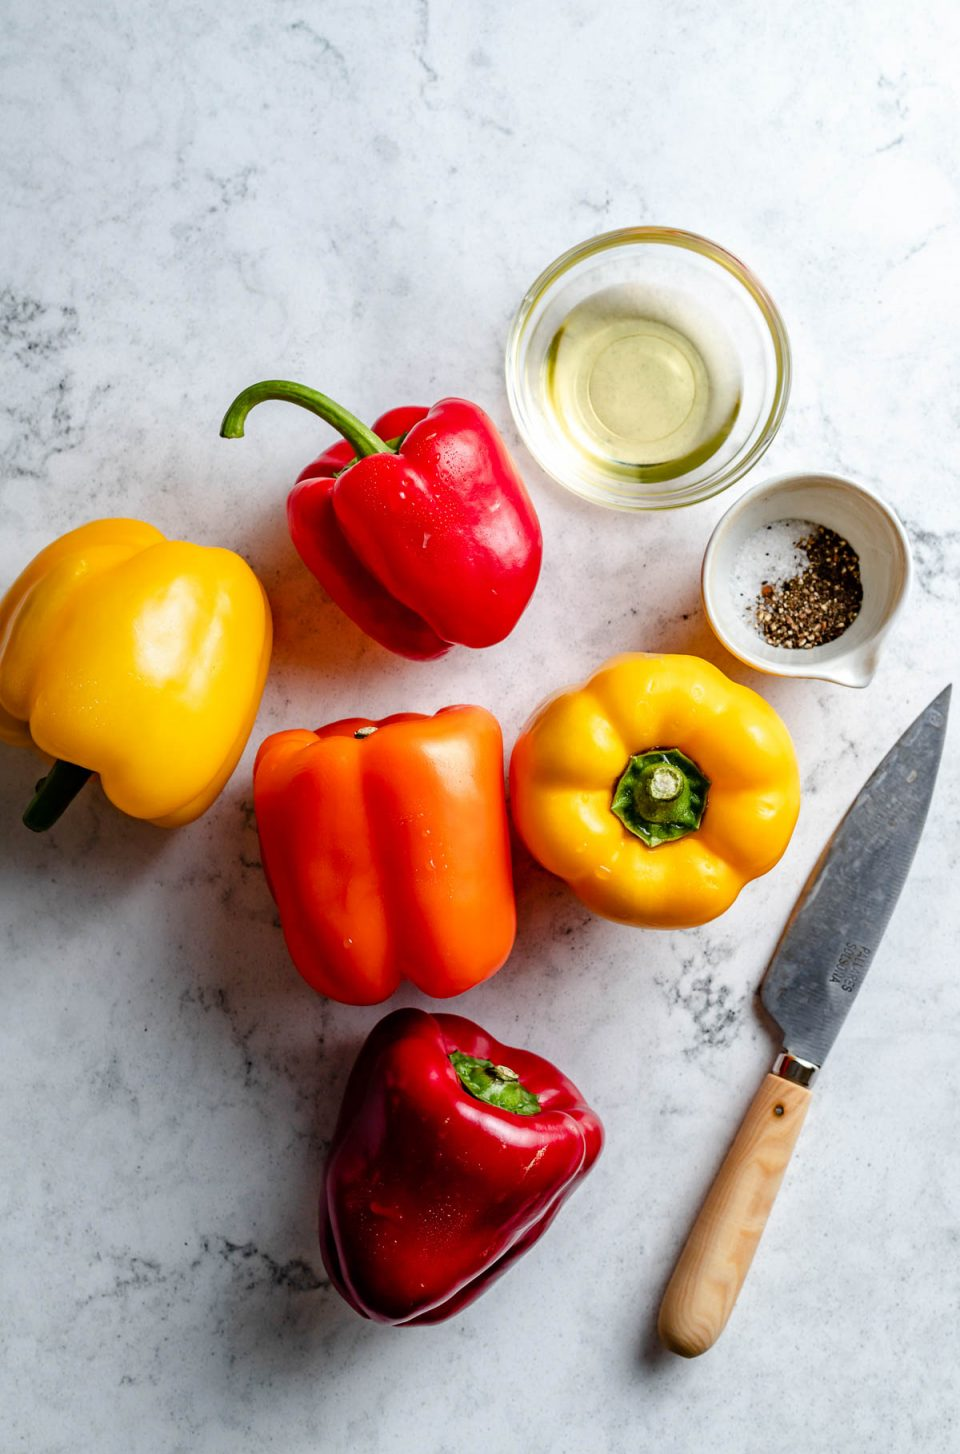 Grilled bell pepper ingredients arranged on a white & grey marble surface - yellow, orange, & red bell peppers, avocado oil, kosher salt, & ground black pepper. A pairing knife rests on the surface next to the ingredients.